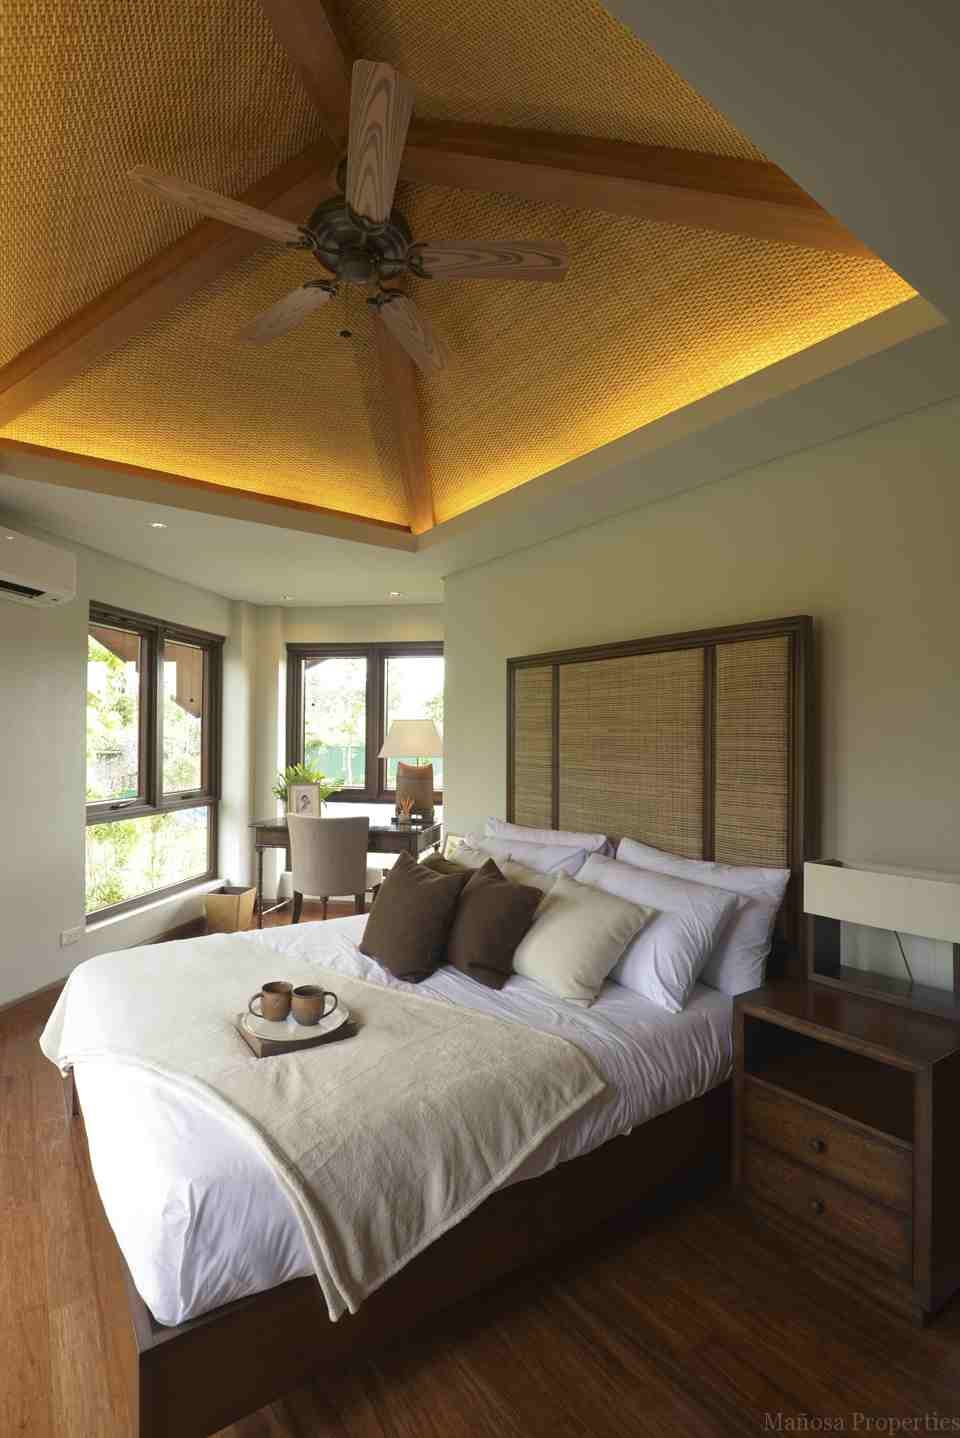 balinese interior design bedroom | ungasan villas | interior